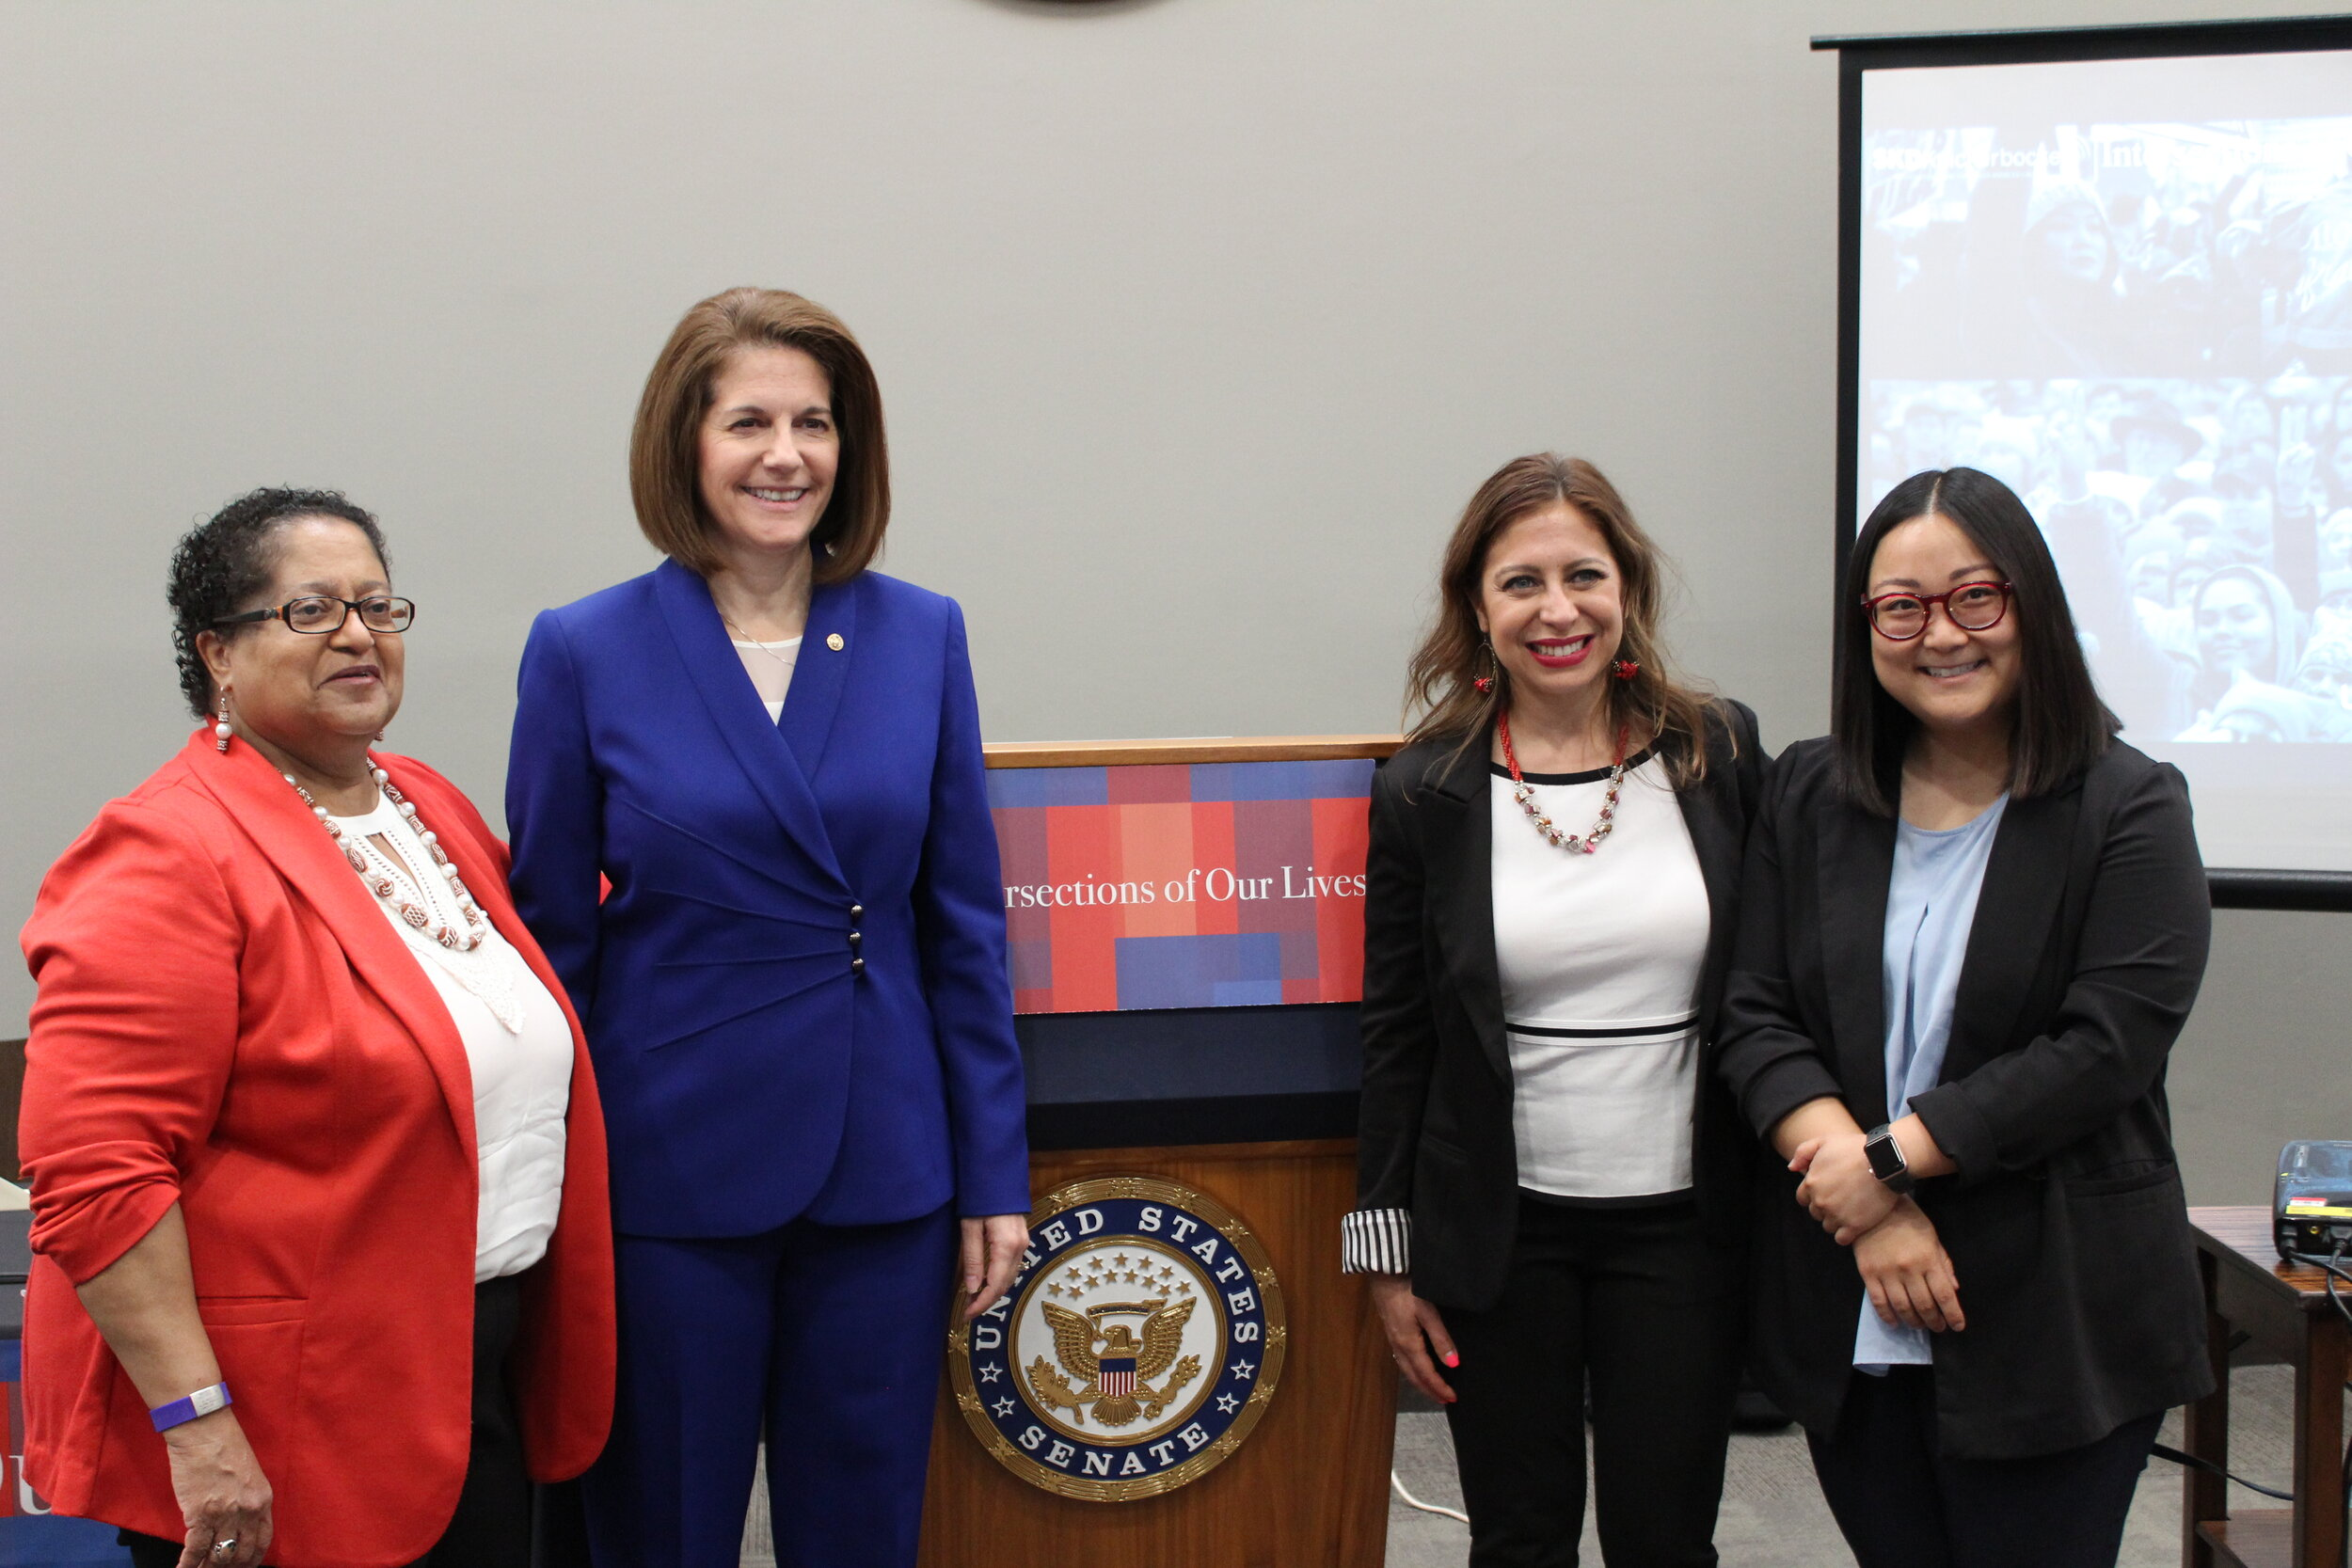 From Left to Right; Marcela Howell, President of In Our Own Voice: National Black Women's Reproductive Justice Agenda; Senator Cortez-Masto of Nevada; Jessica González-Rojas, Executive Director of the National Latina Institute for Reproductive Health; and Jennifer Wang, Deputy Director of Programs for NAPAWF